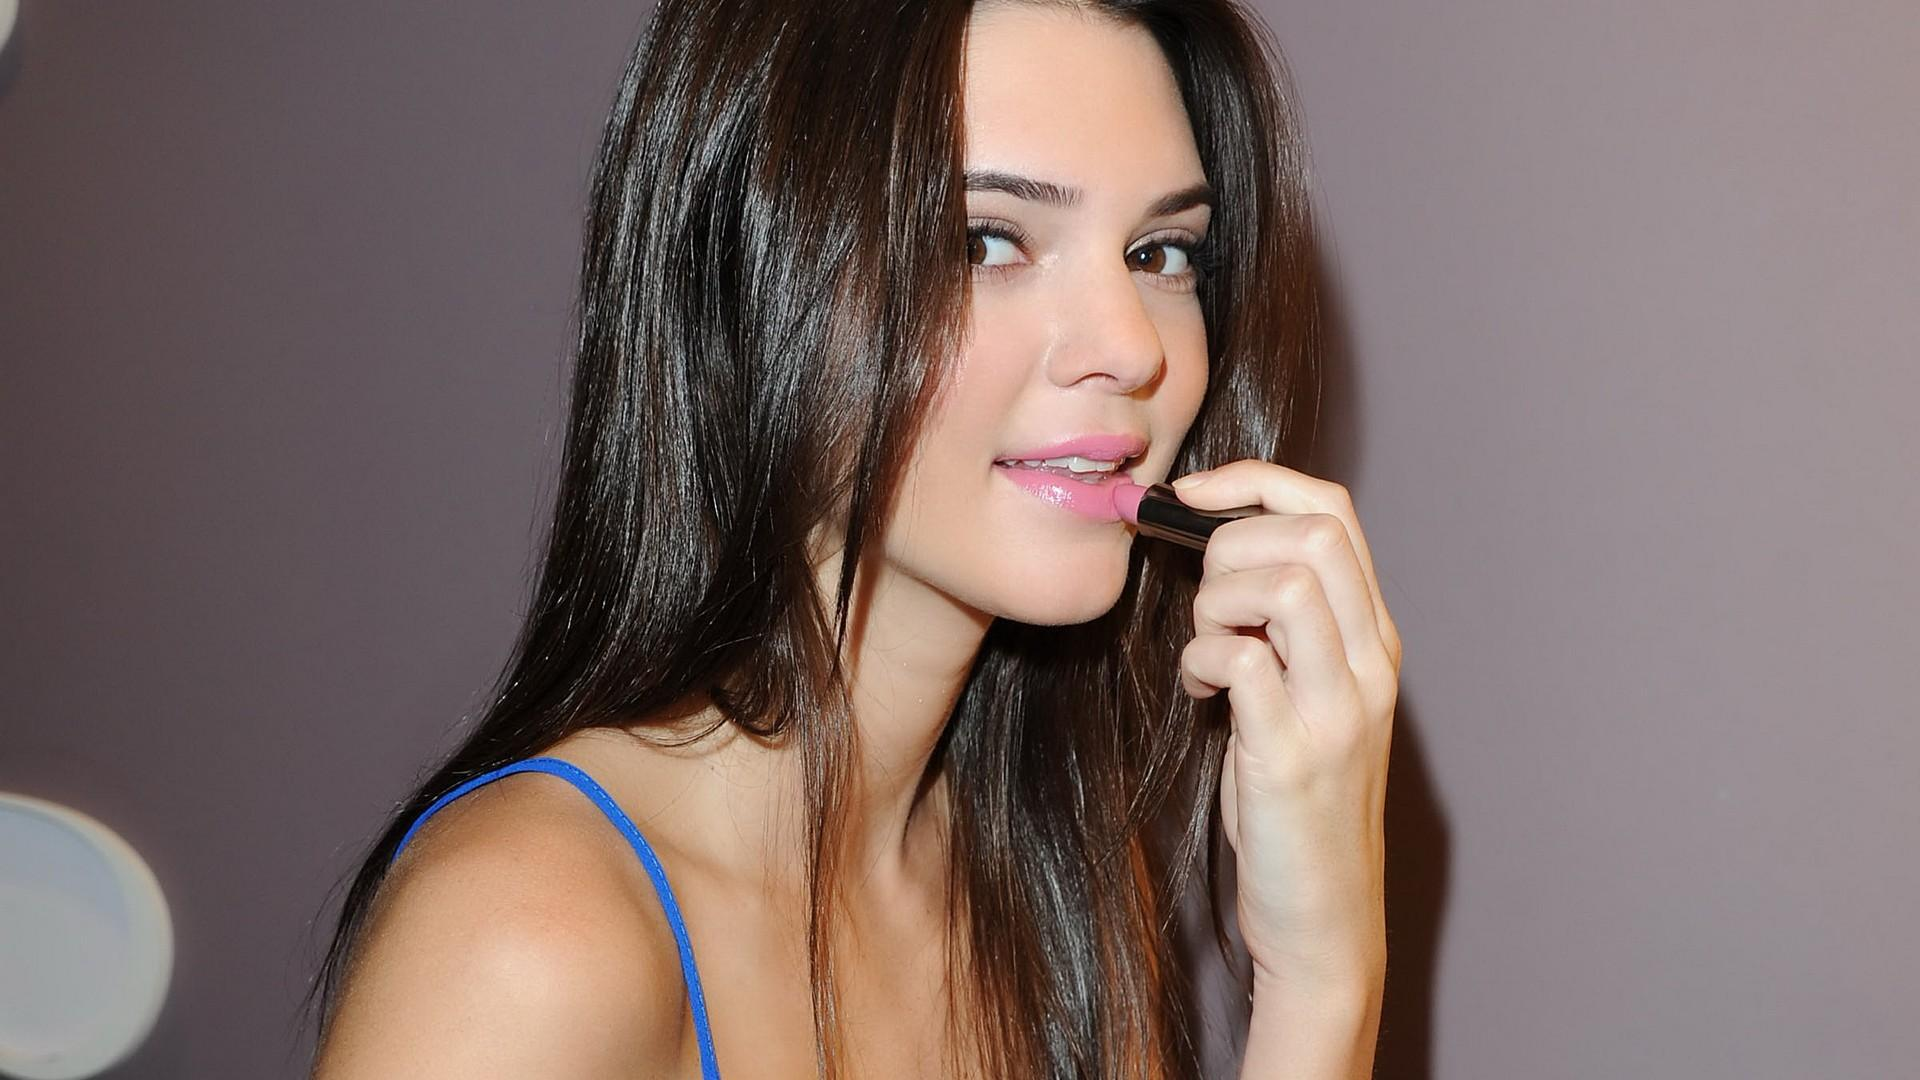 Kendall Jenner Download Free Backgrounds HD